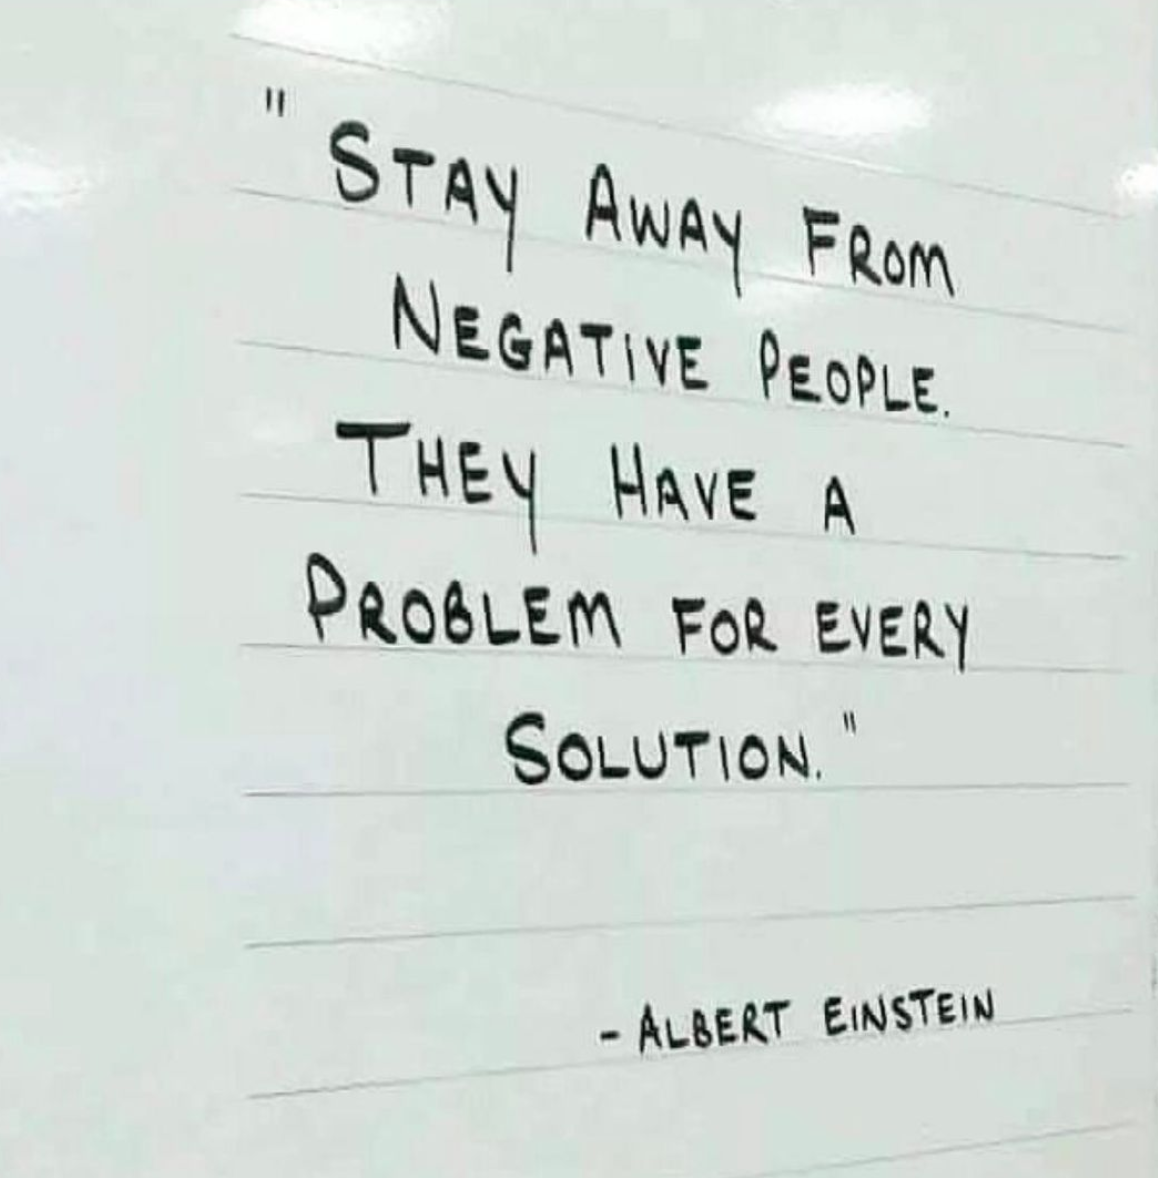 [Image] Stay away from negative people. They have a problem for every solution.